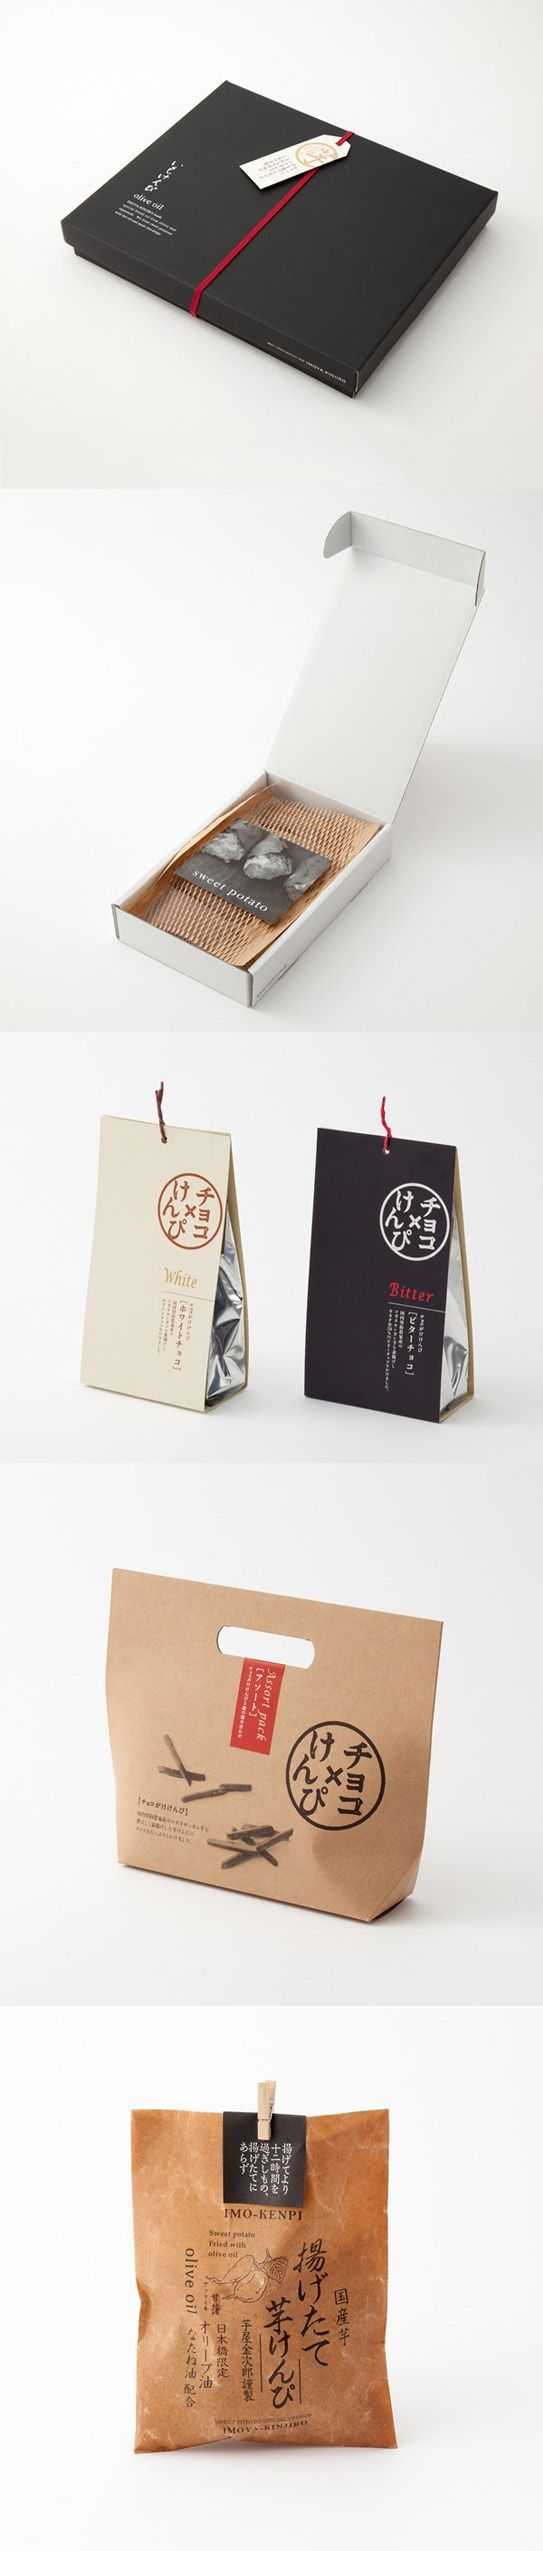 Imoya Kinjiro Packaging Design